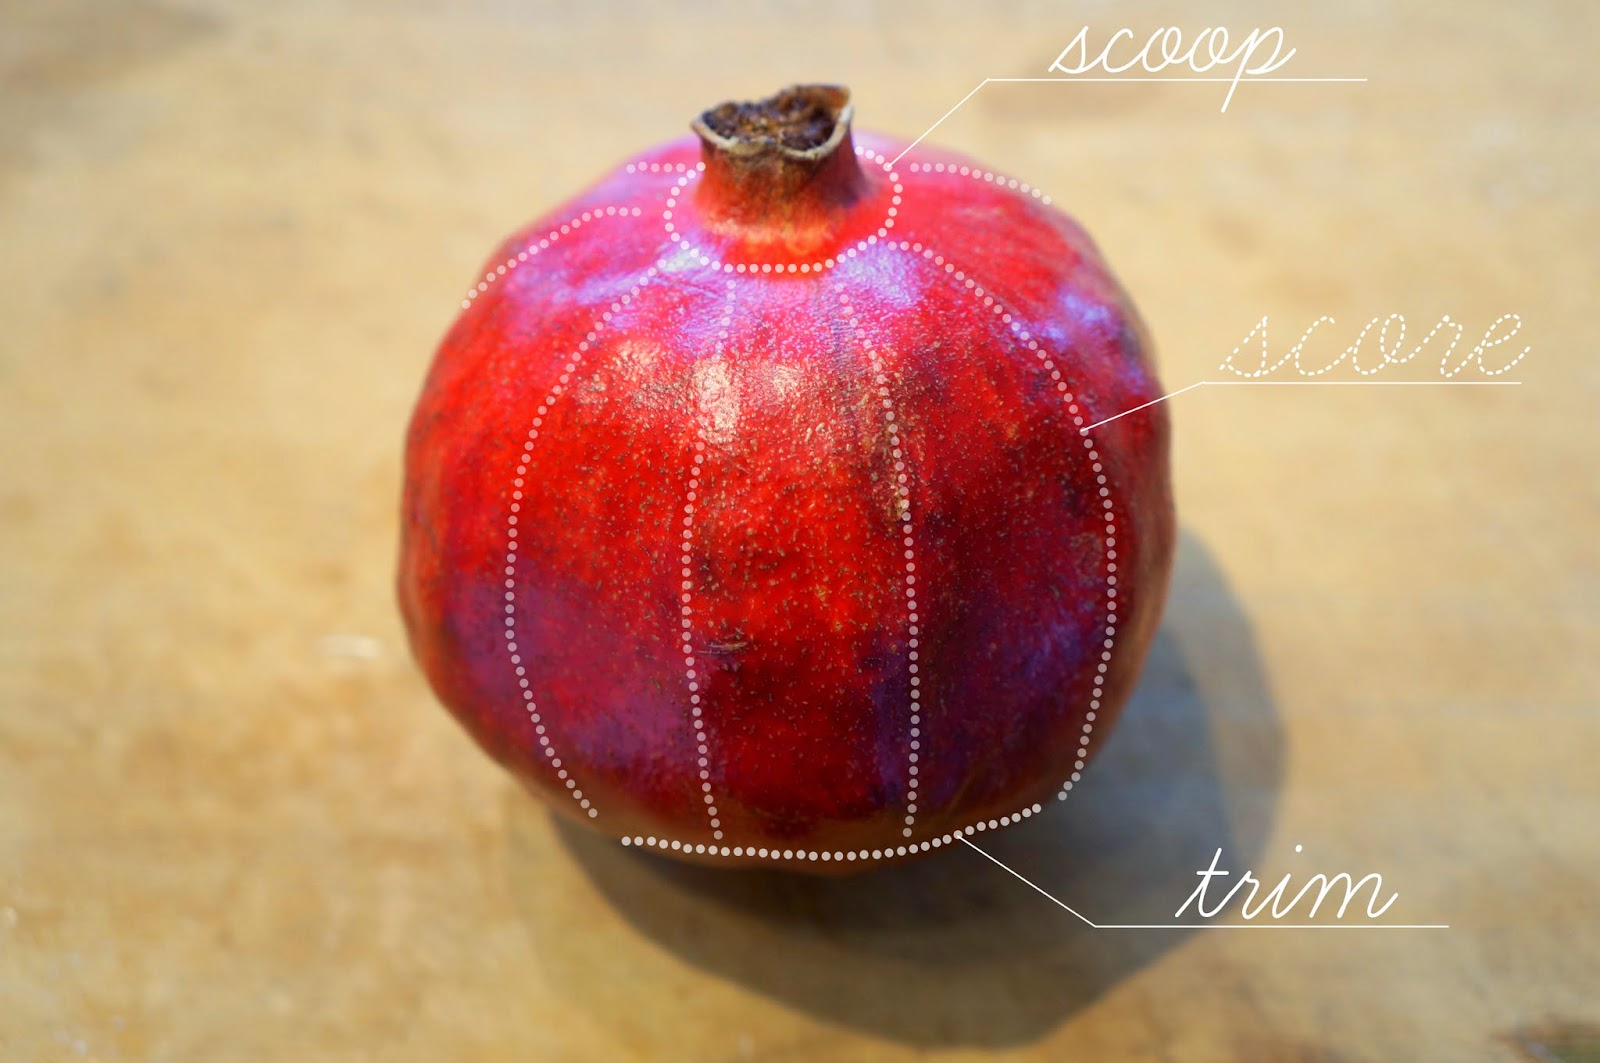 how to get the fruit out of a pomegranate